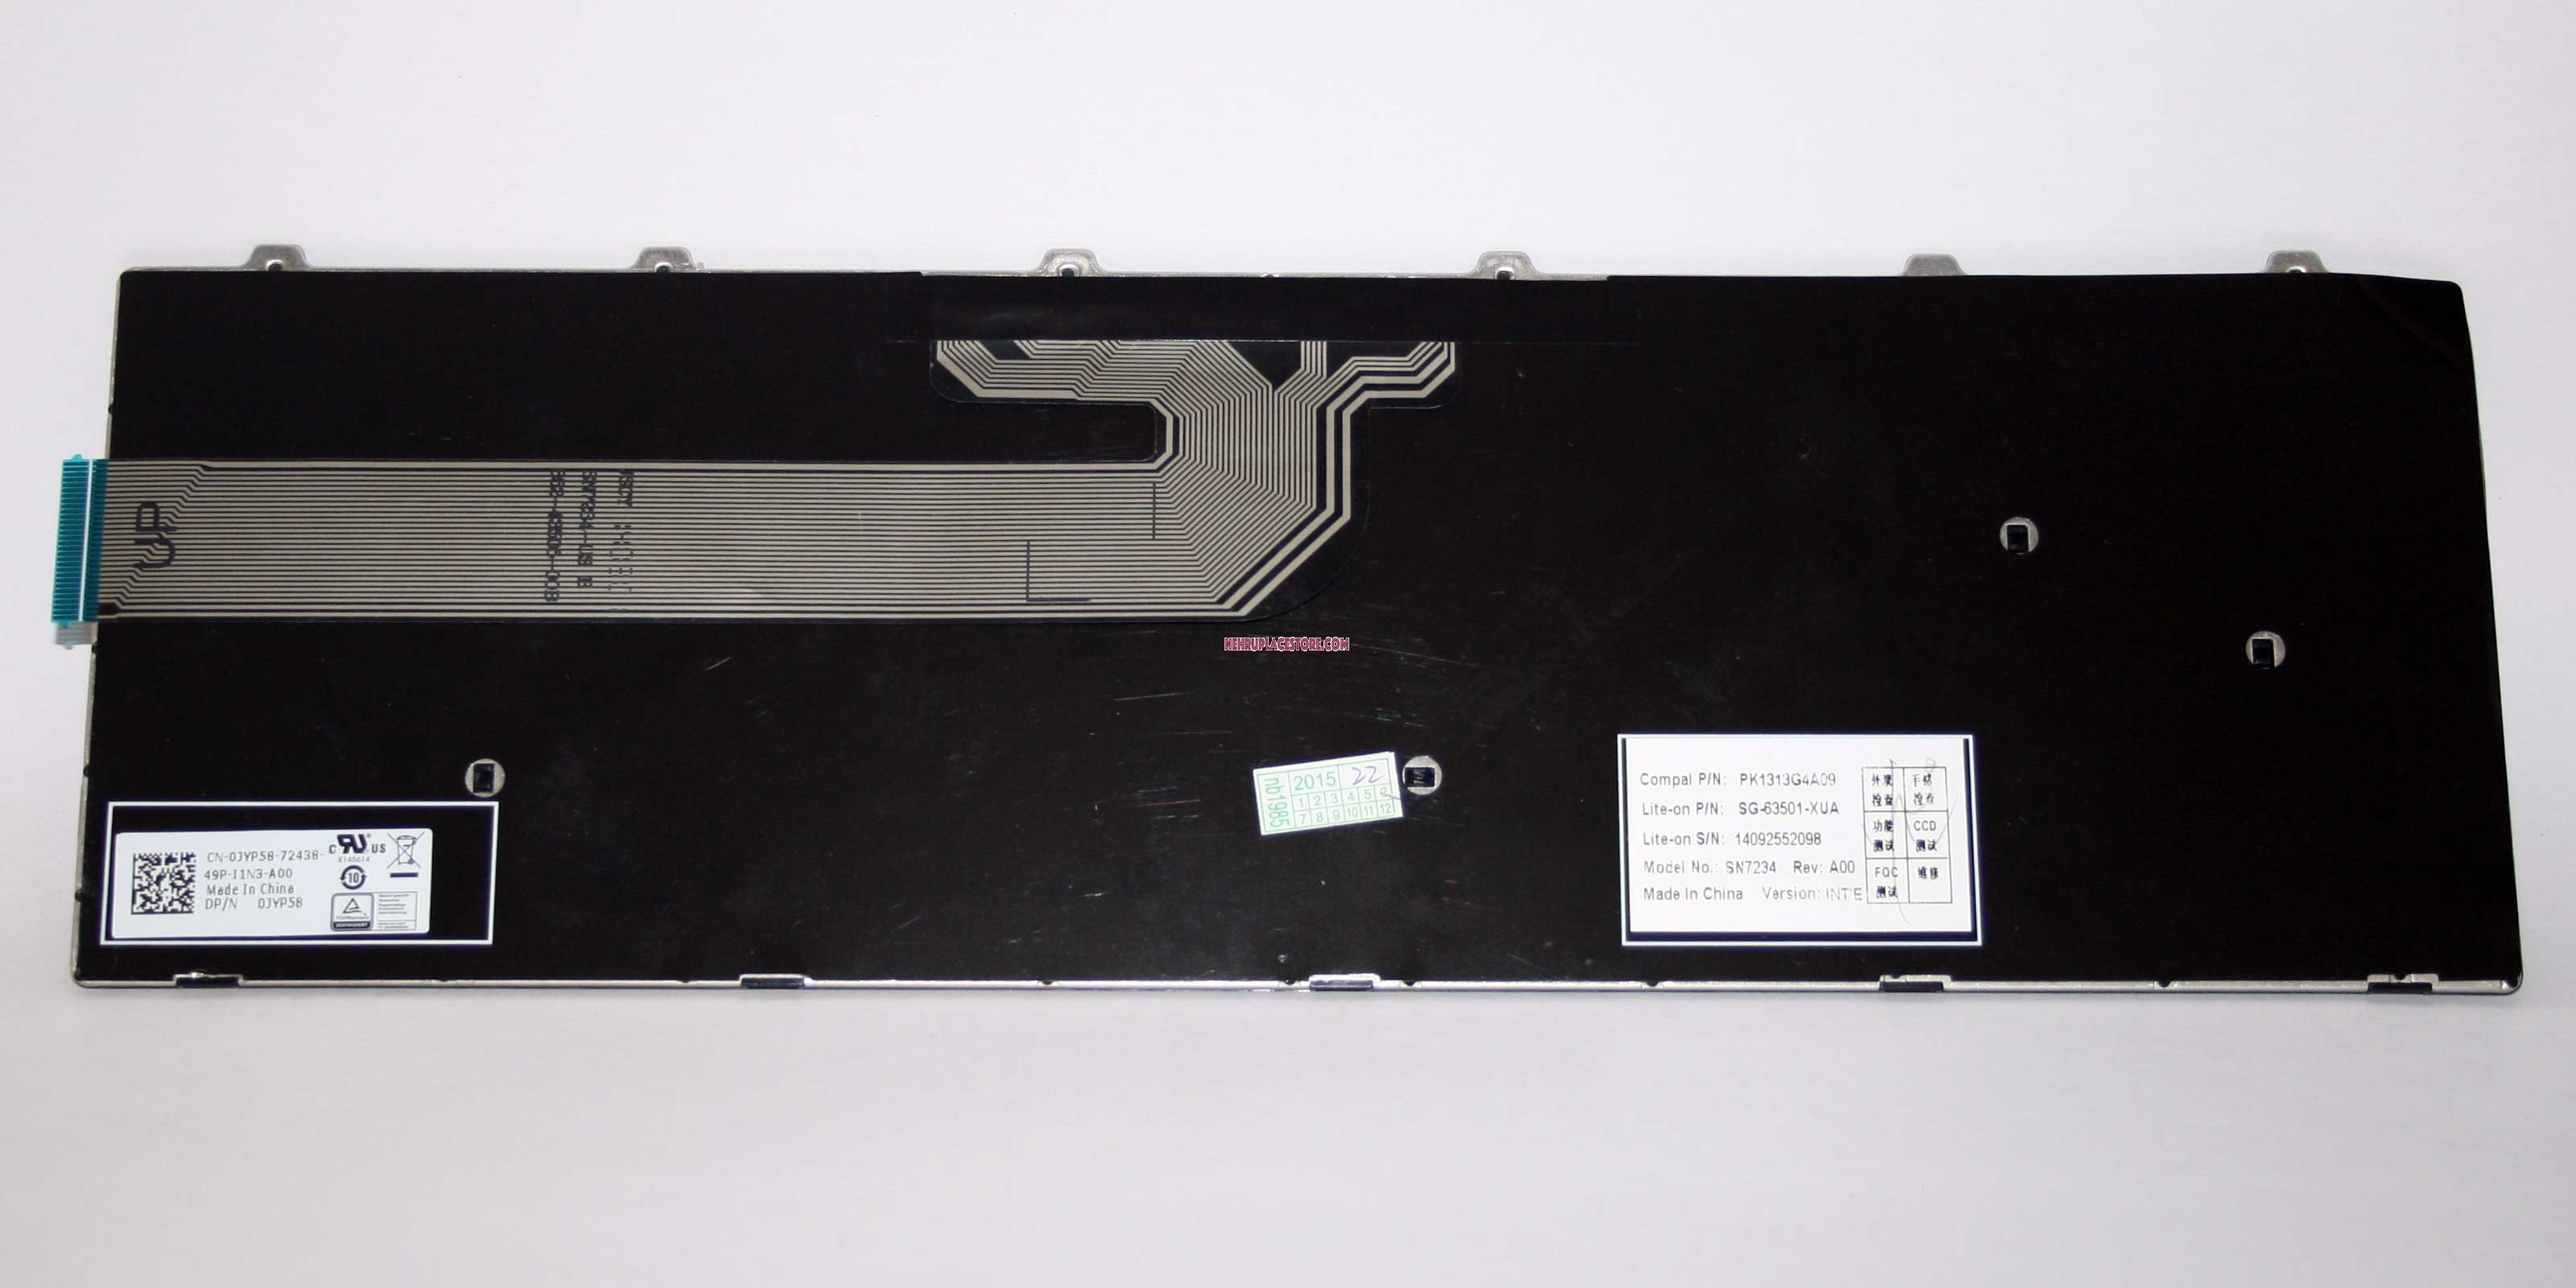 New Dell Inspiron 3000 5000 Series 15 3541 3542 3543 5542 5545 5547 Laptop  US Keyboard 0JYP58 Non-Backlit